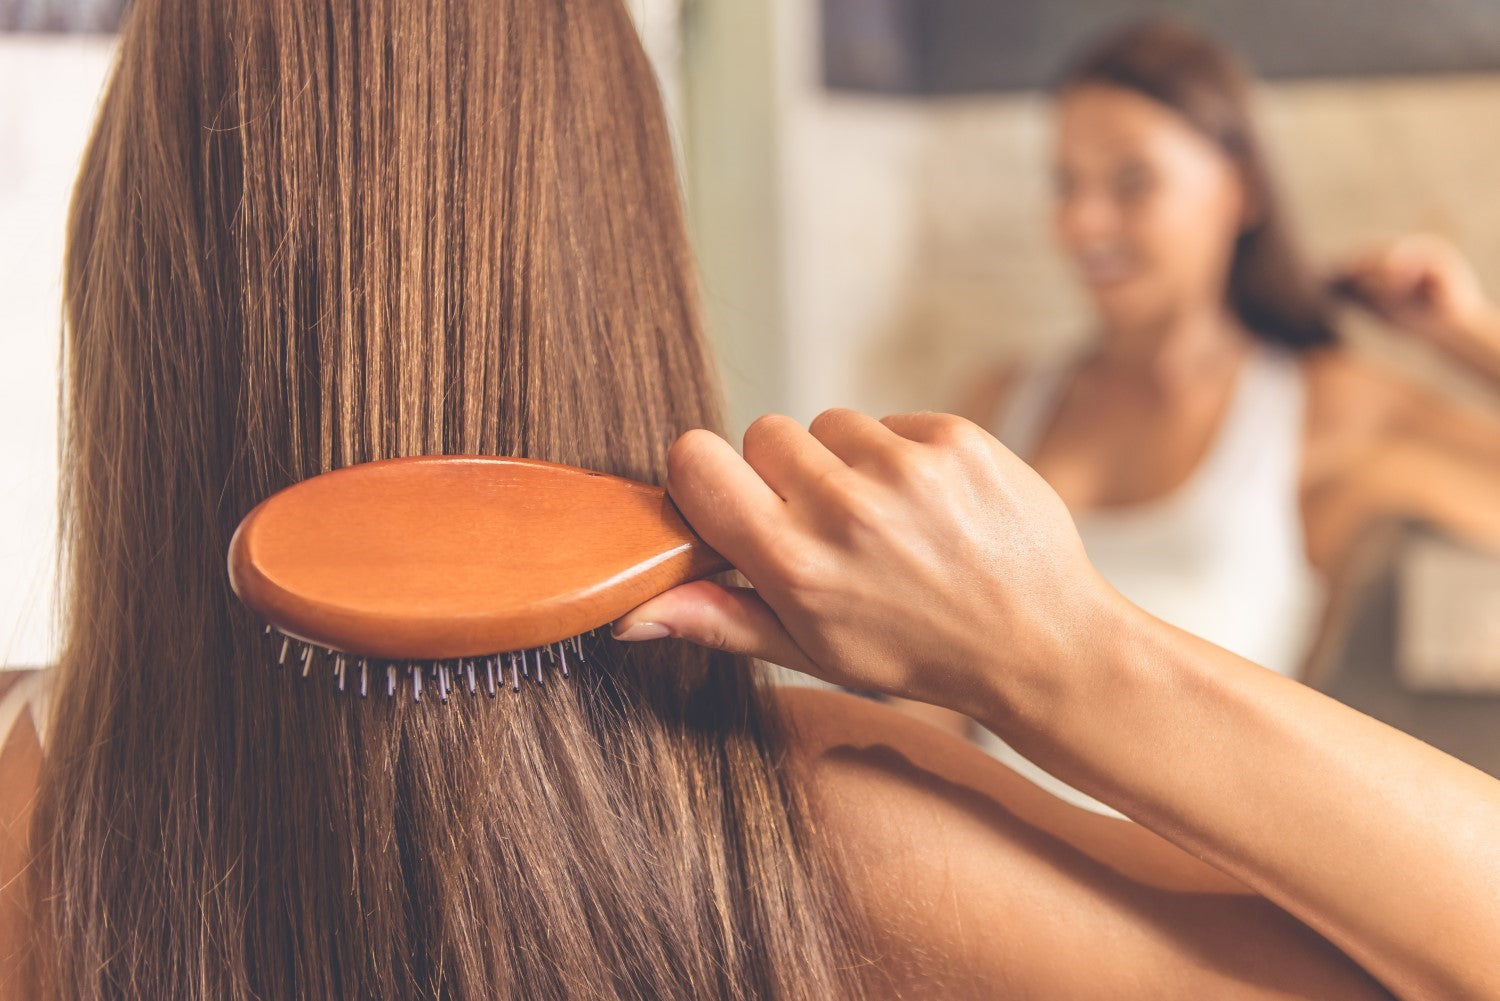 lady combing her healthy hair